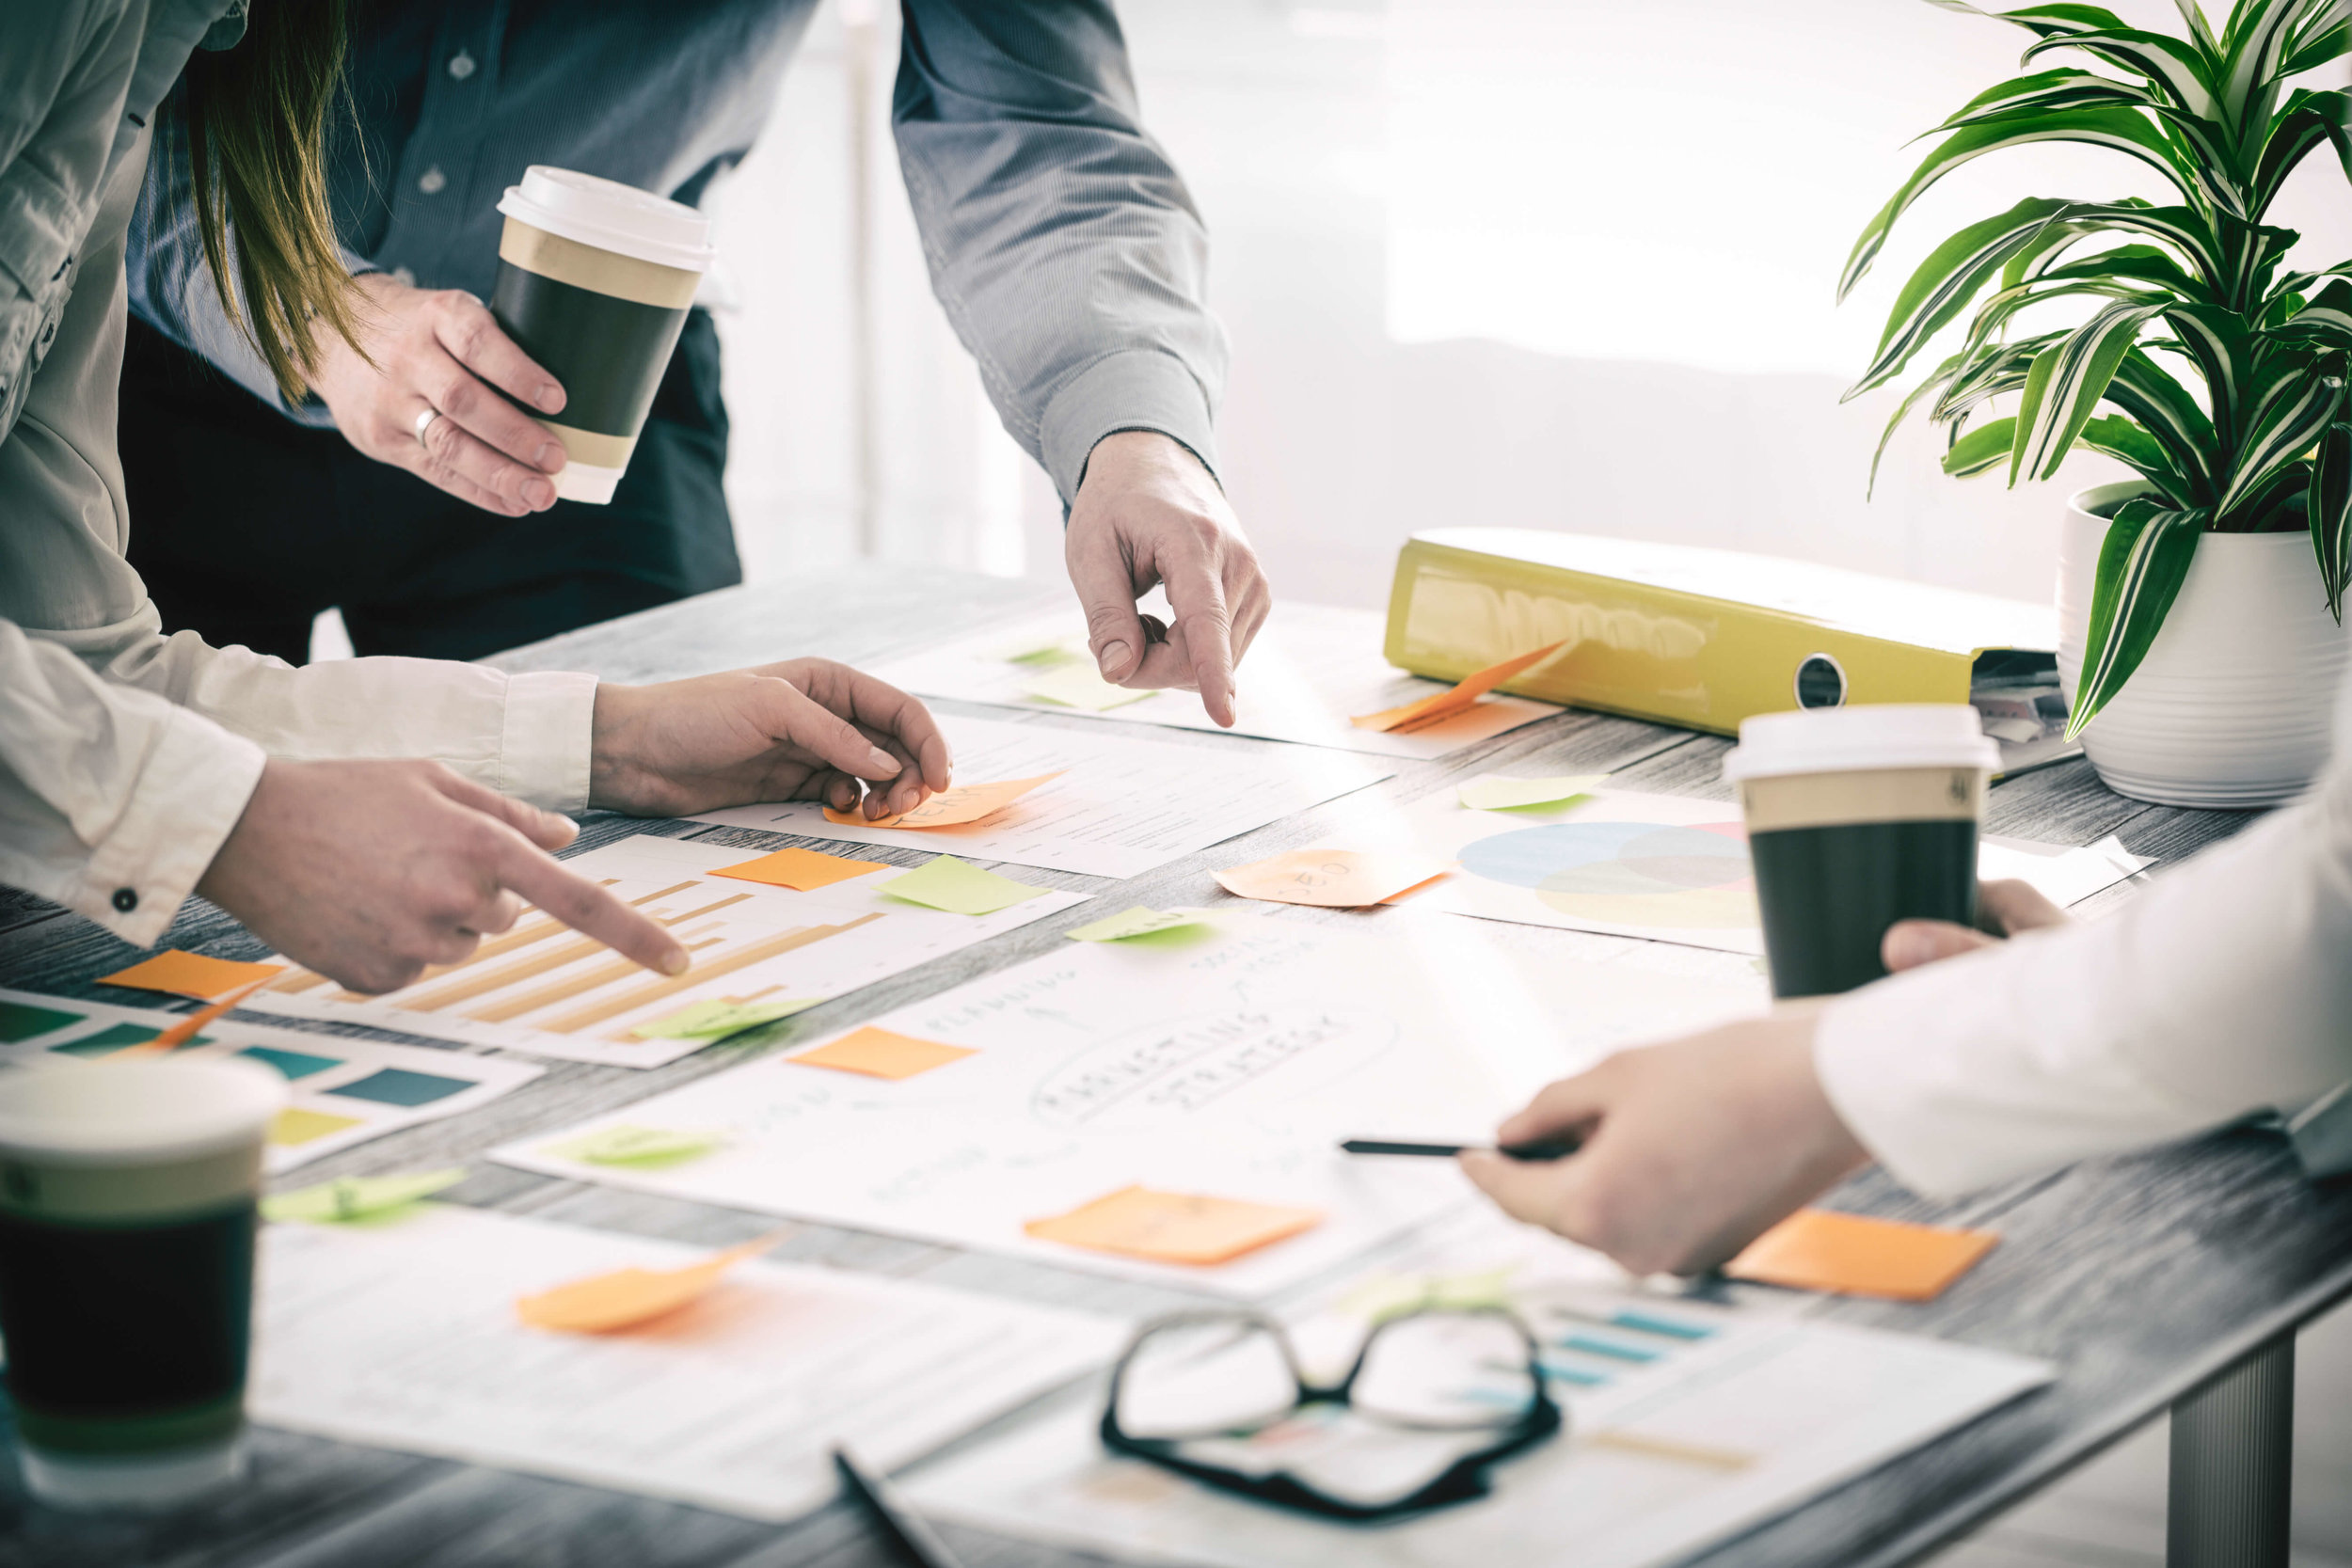 Project Planning - Ventrify follows a lean design process, meaning that the end-users needs are greatly prioritized. The lean development process is responsible for the success of many products in the world around us today.